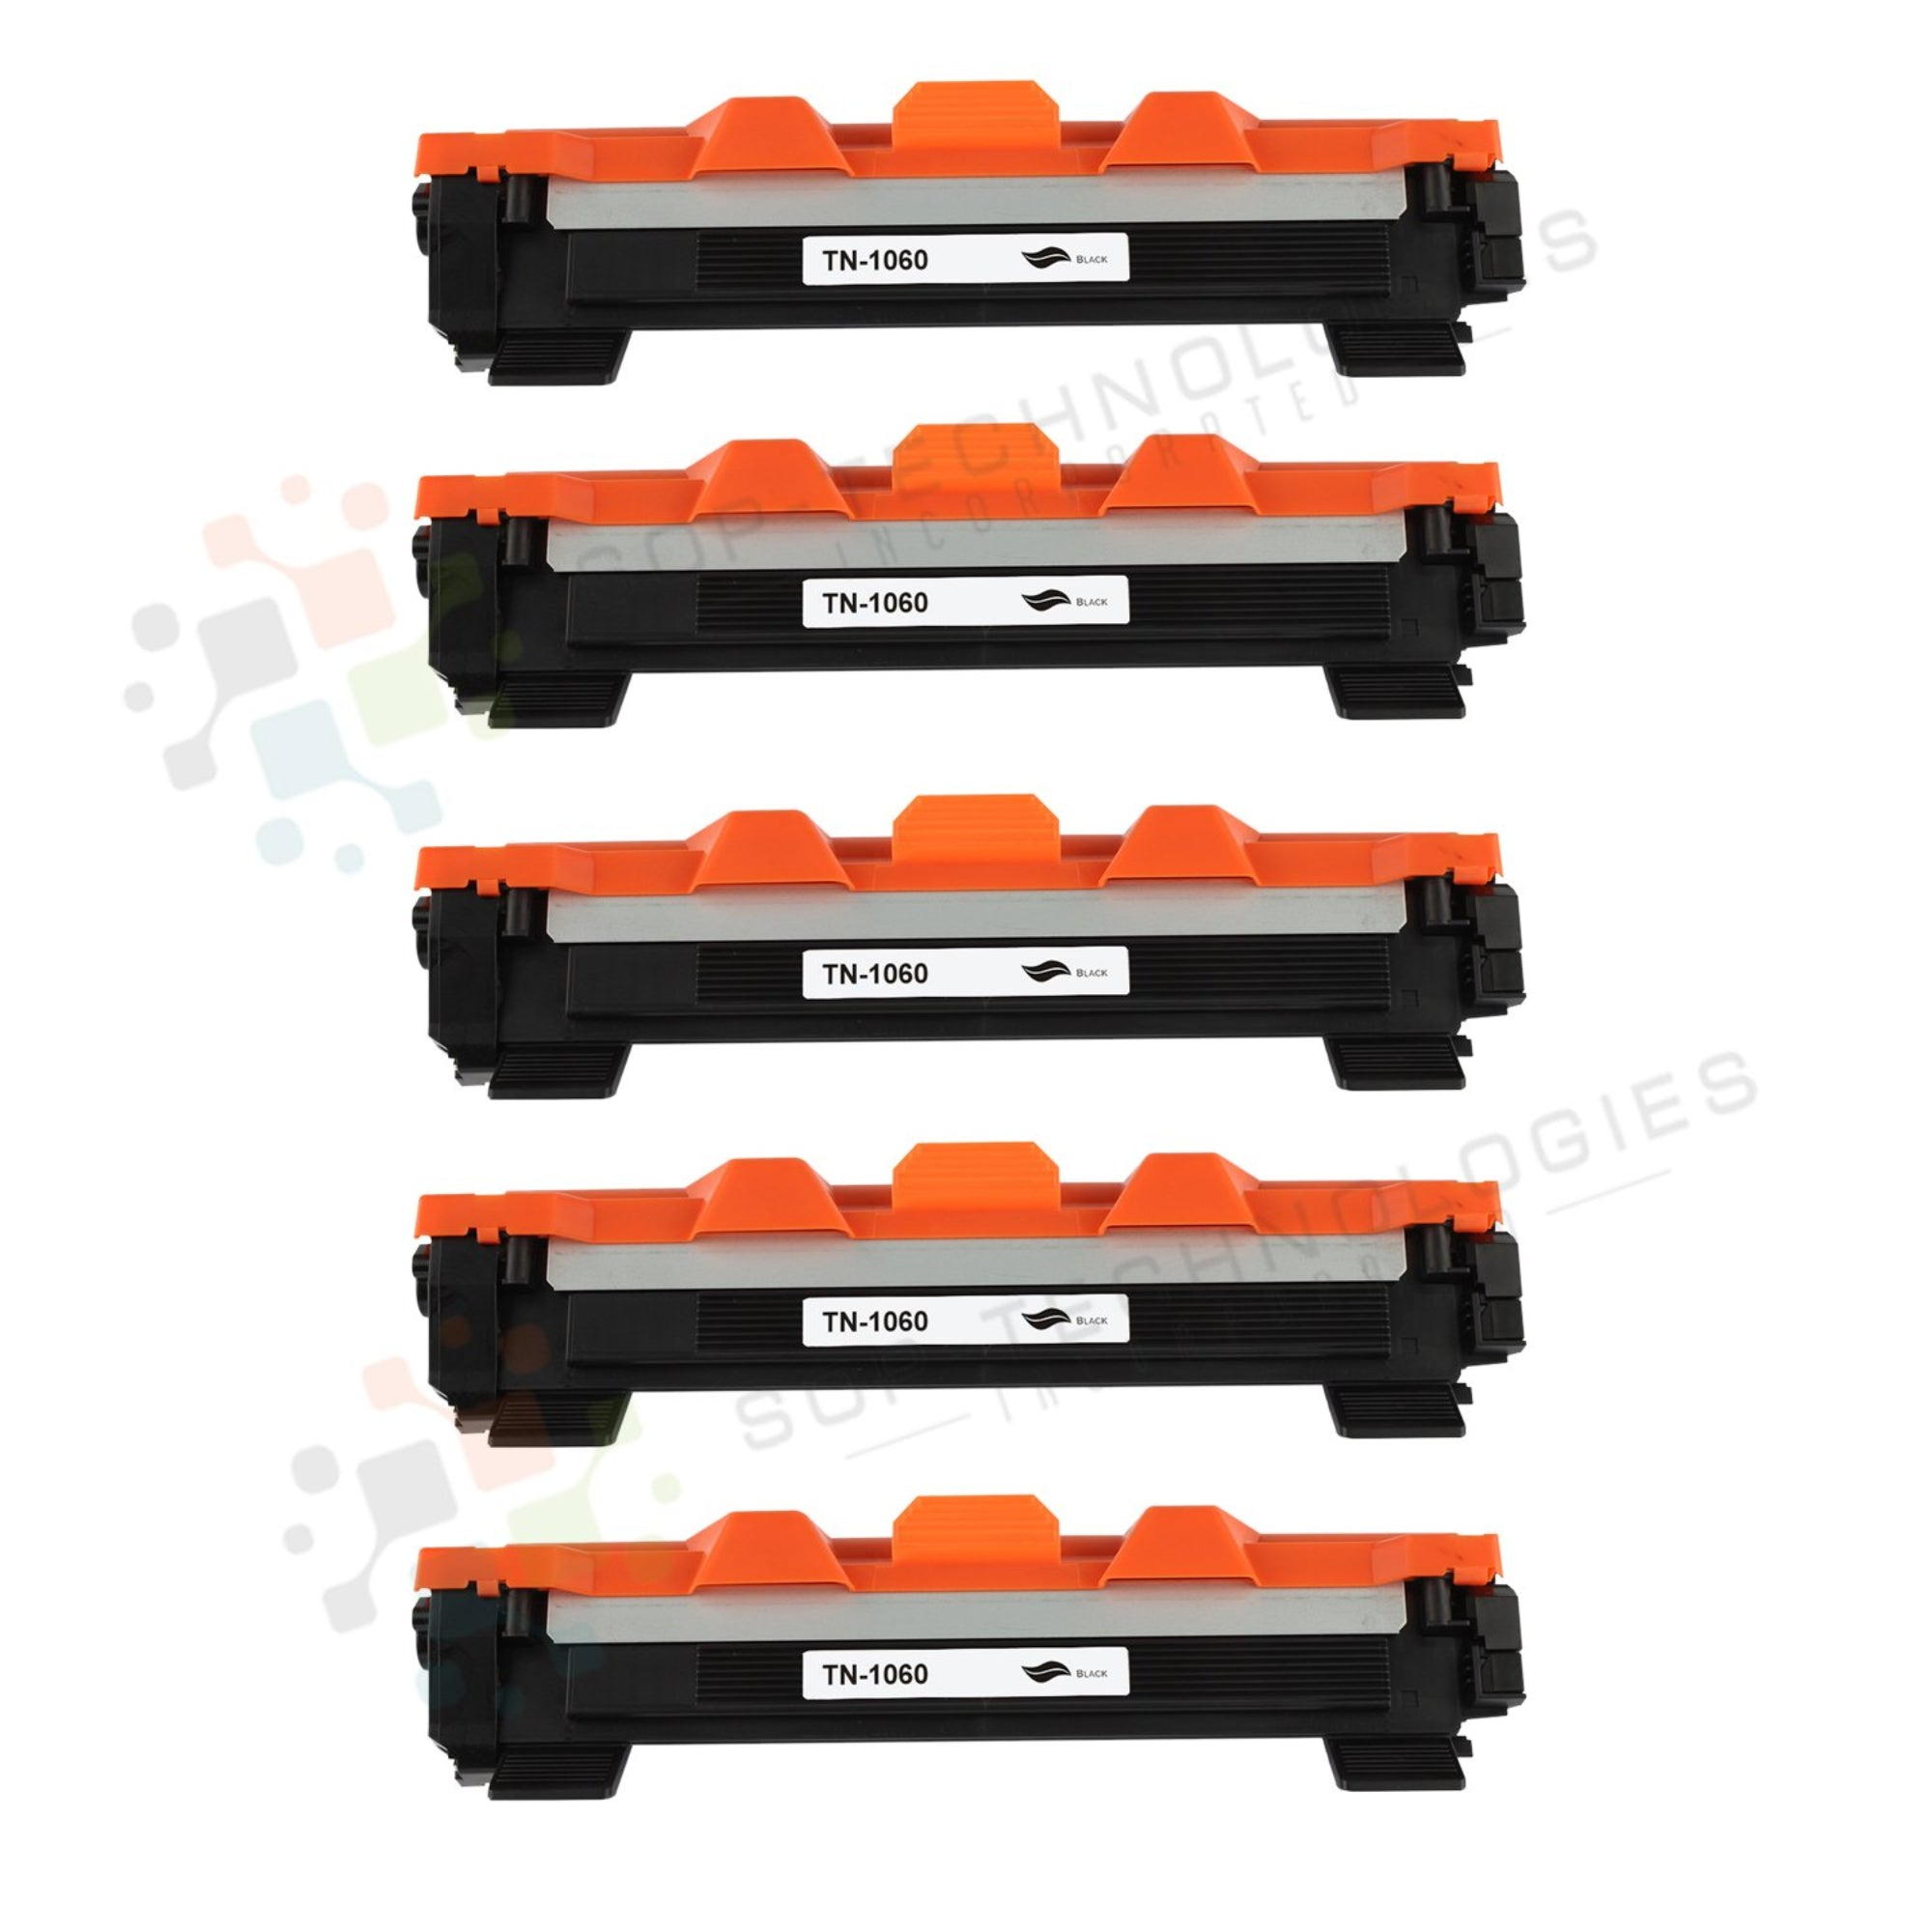 5pk Toner TN1060 TN-1060 Premium Black Compatible Toner Cartridge  Unit Replacement for Brother - SOP-TECHNOLOGIES, INC.